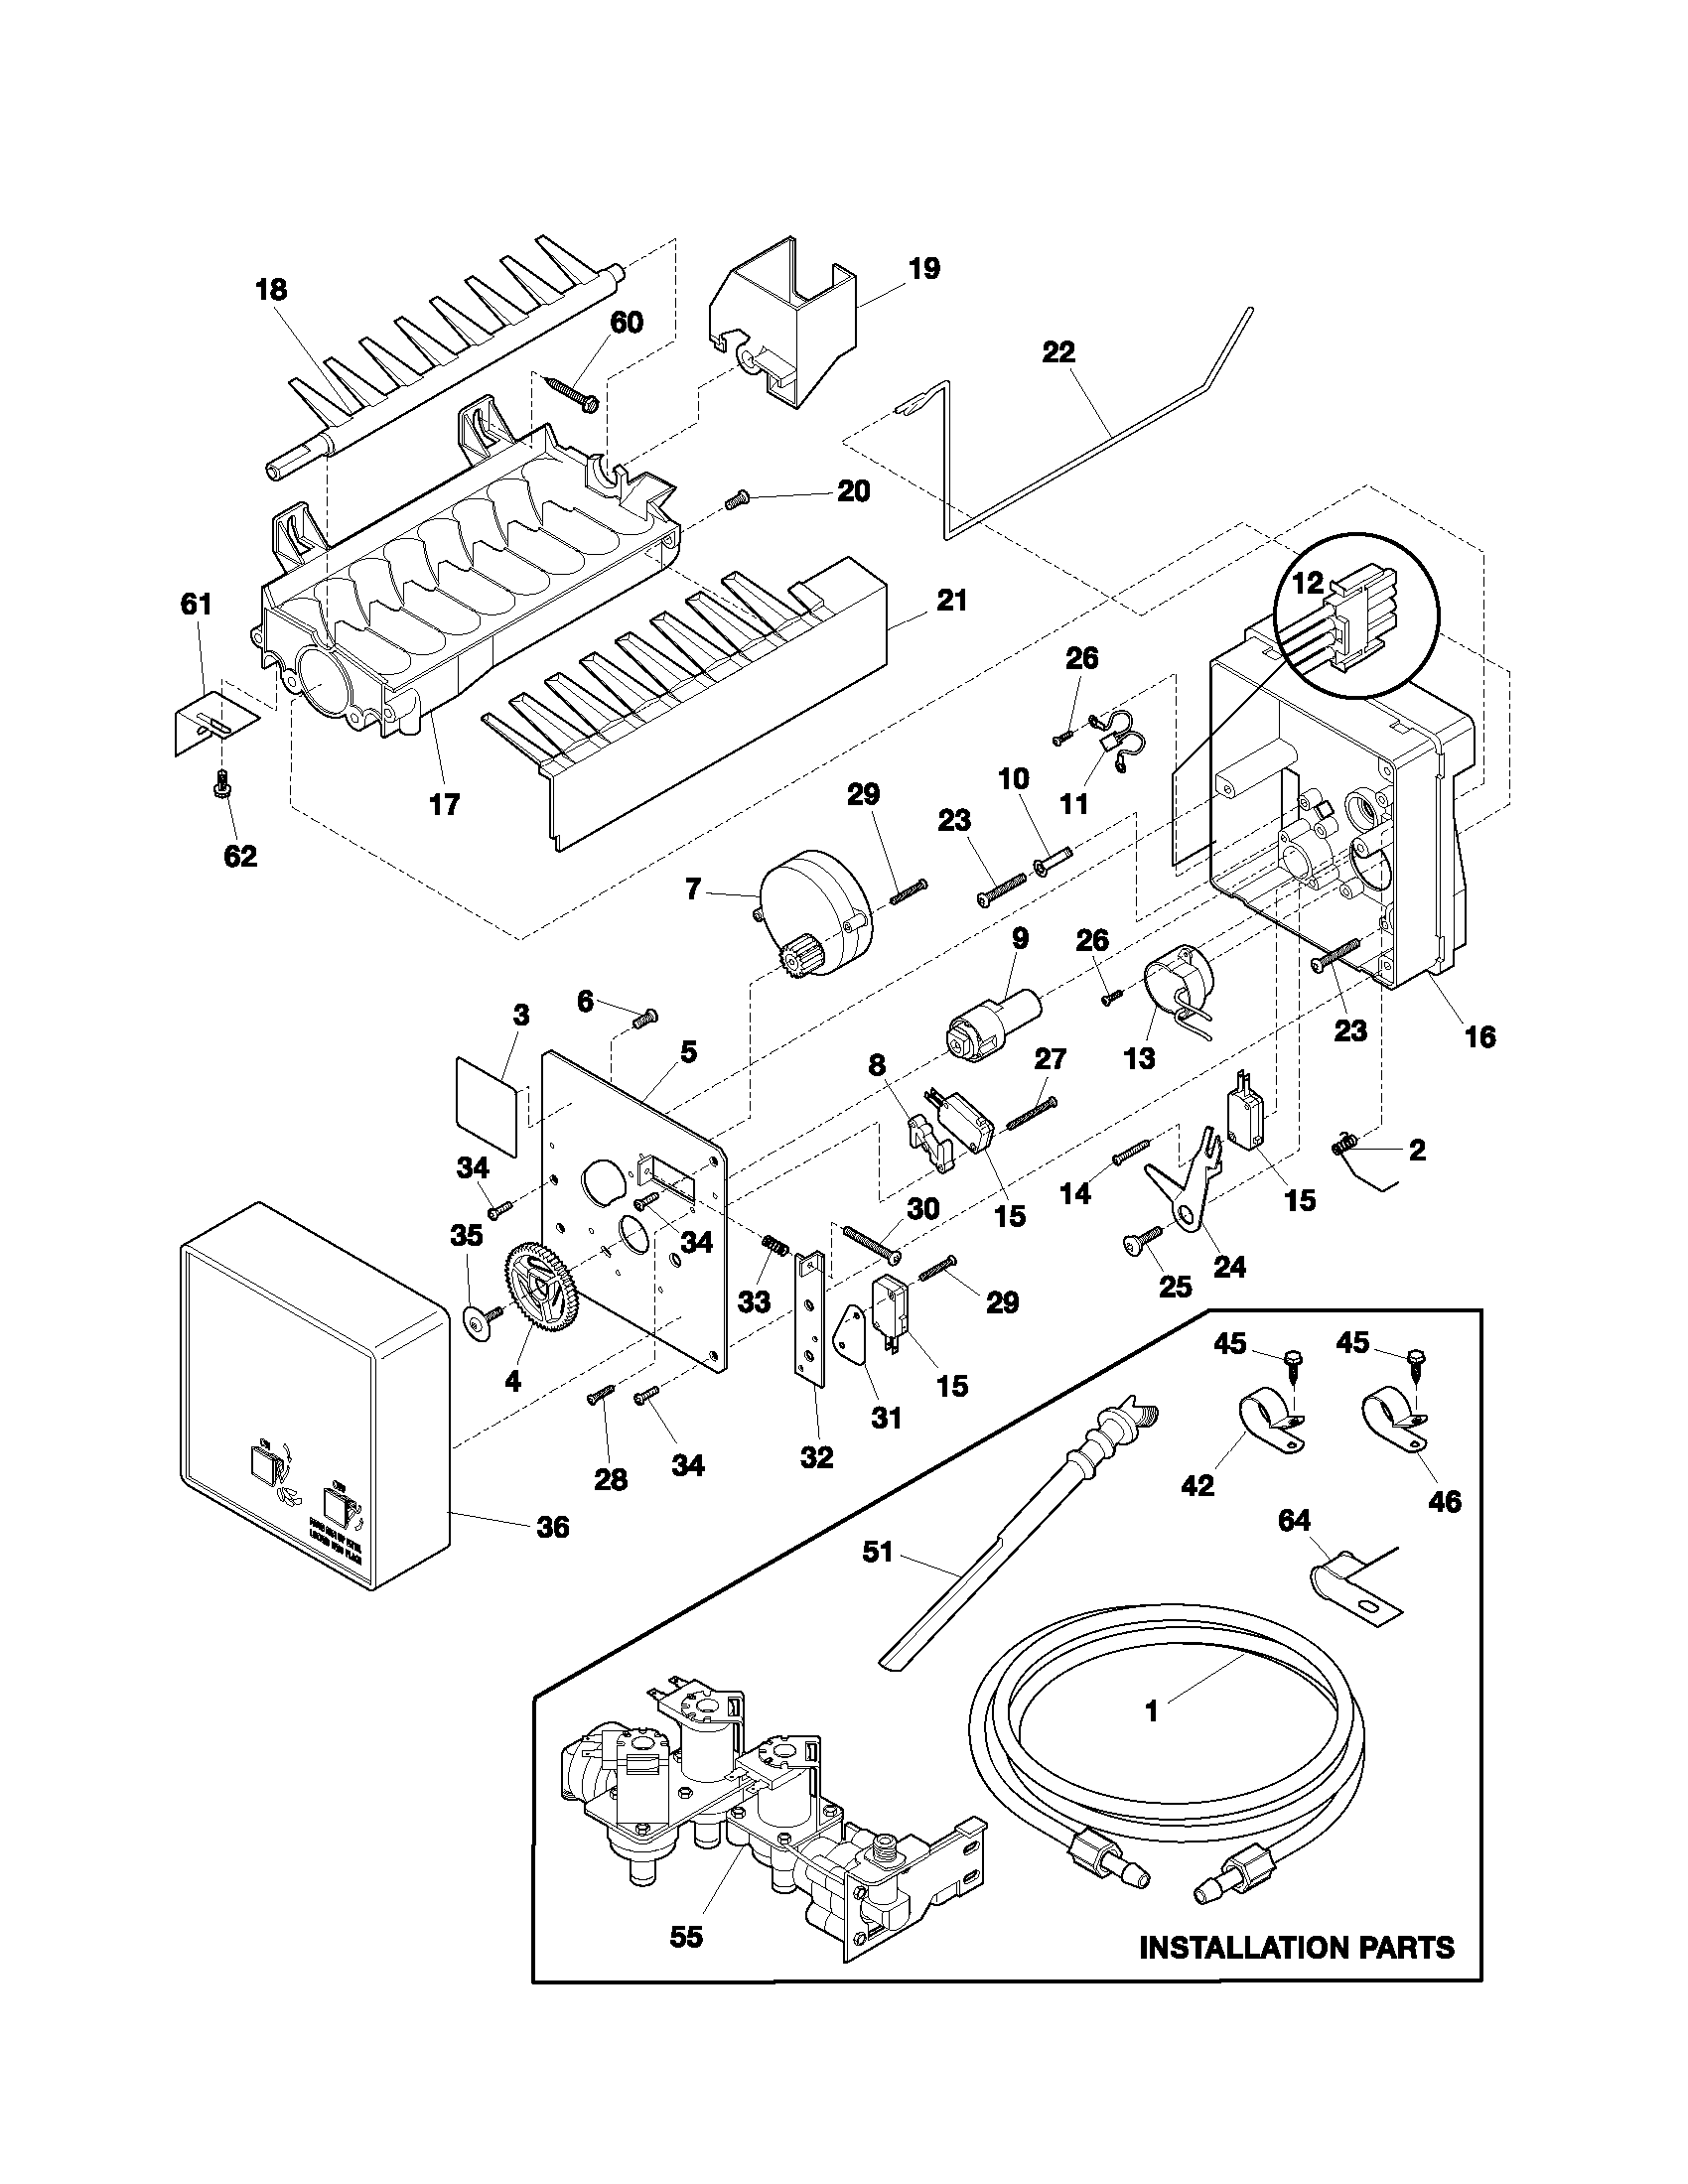 Wiring diagram for scotsman ice machine